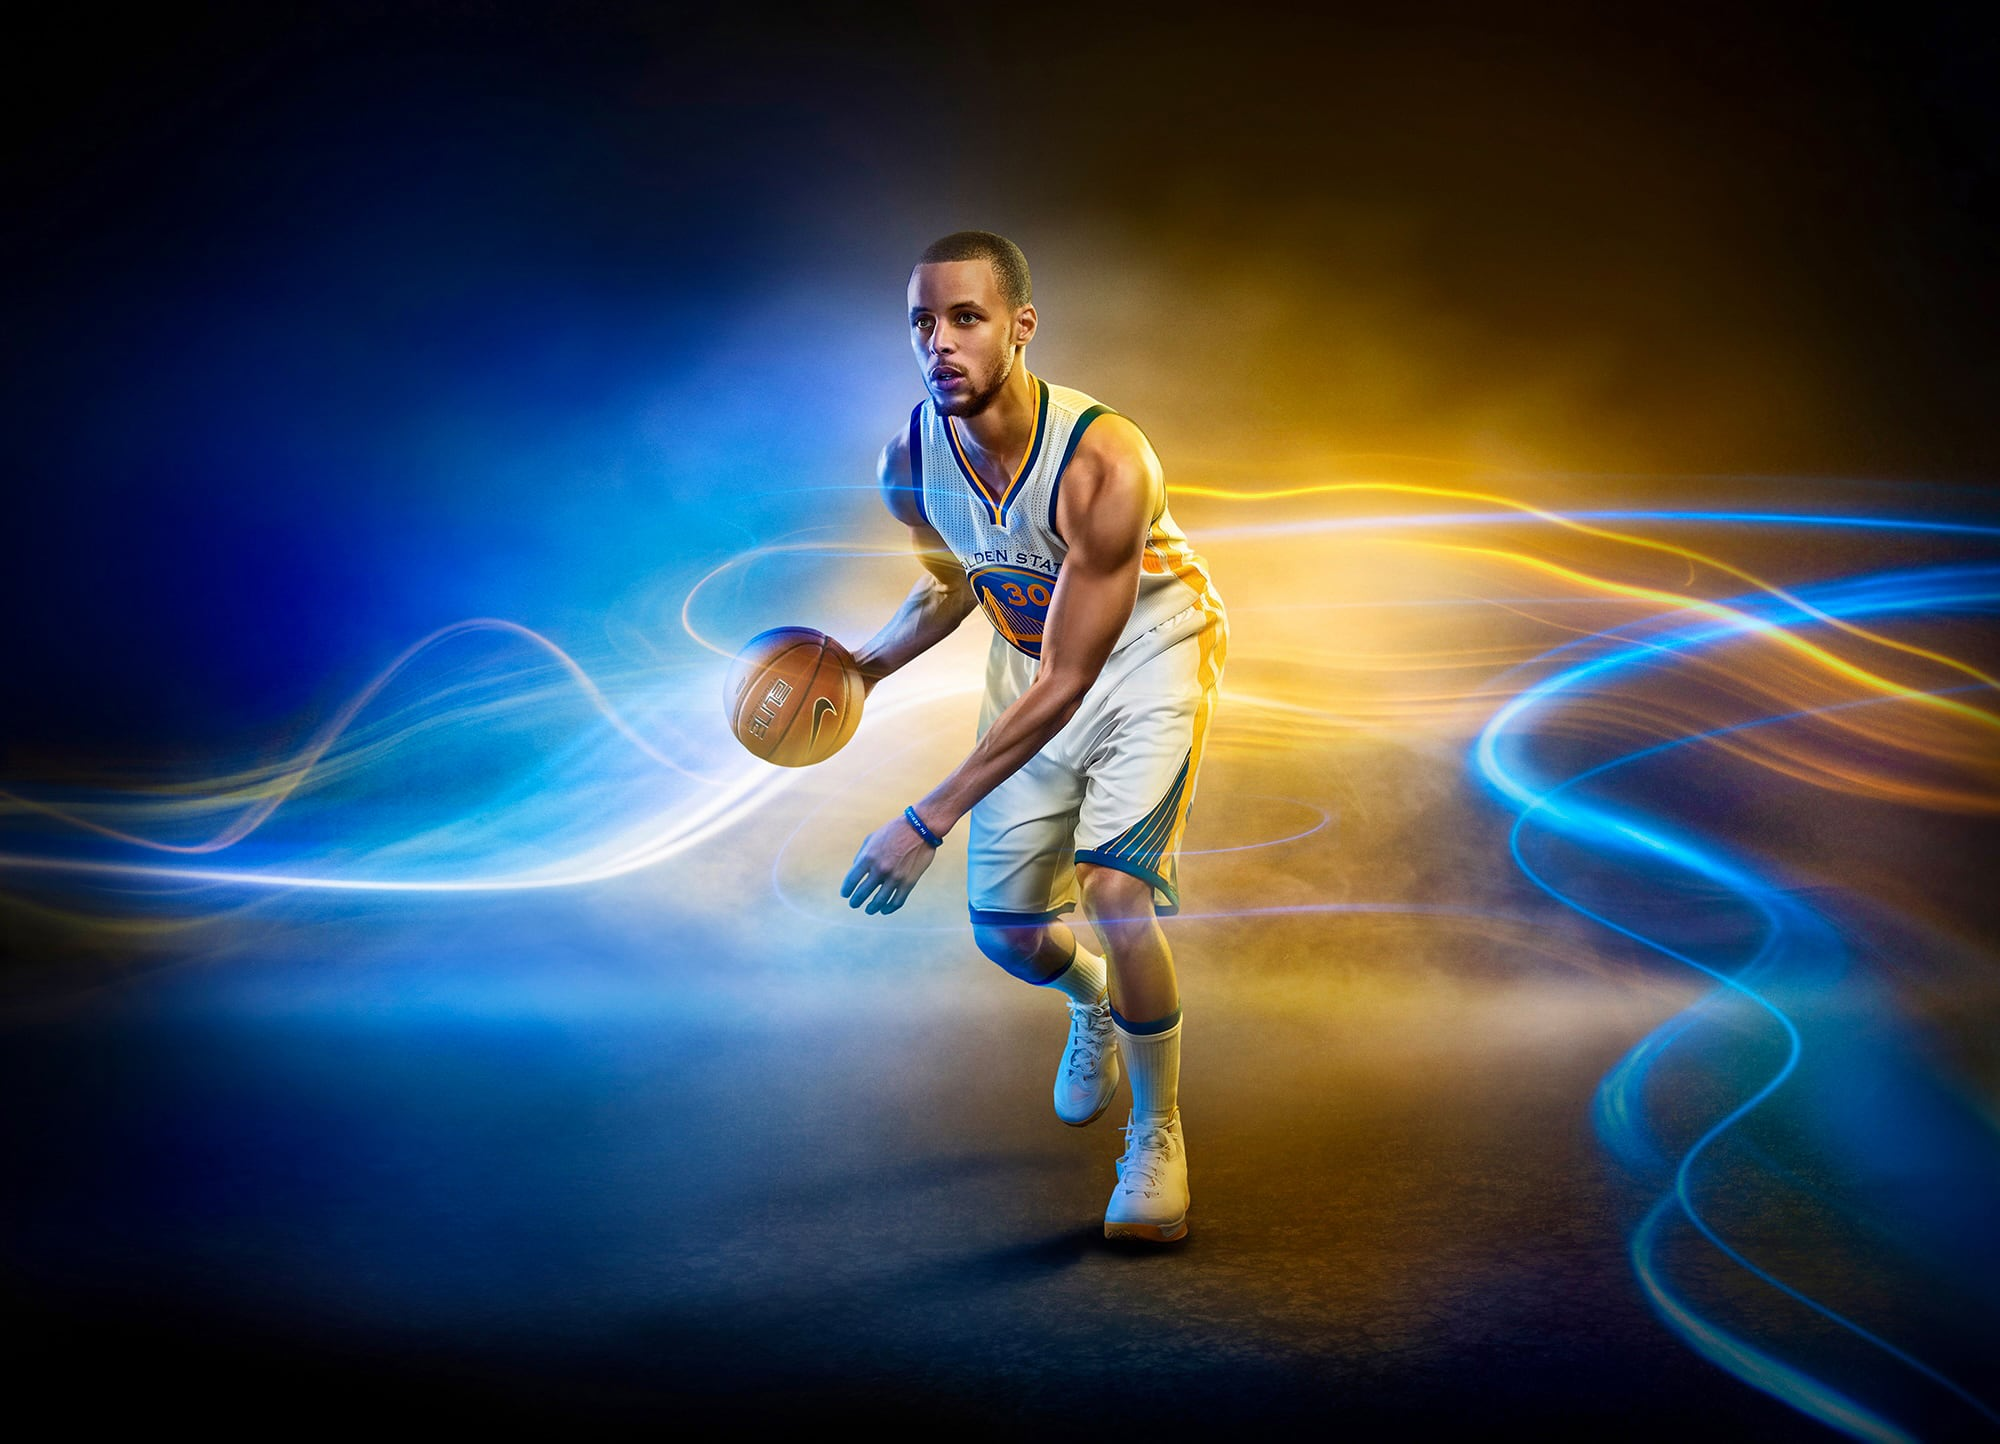 Stephen Curry of the Golden State Warriors photographed by Advertising Photographer Blair Bunting